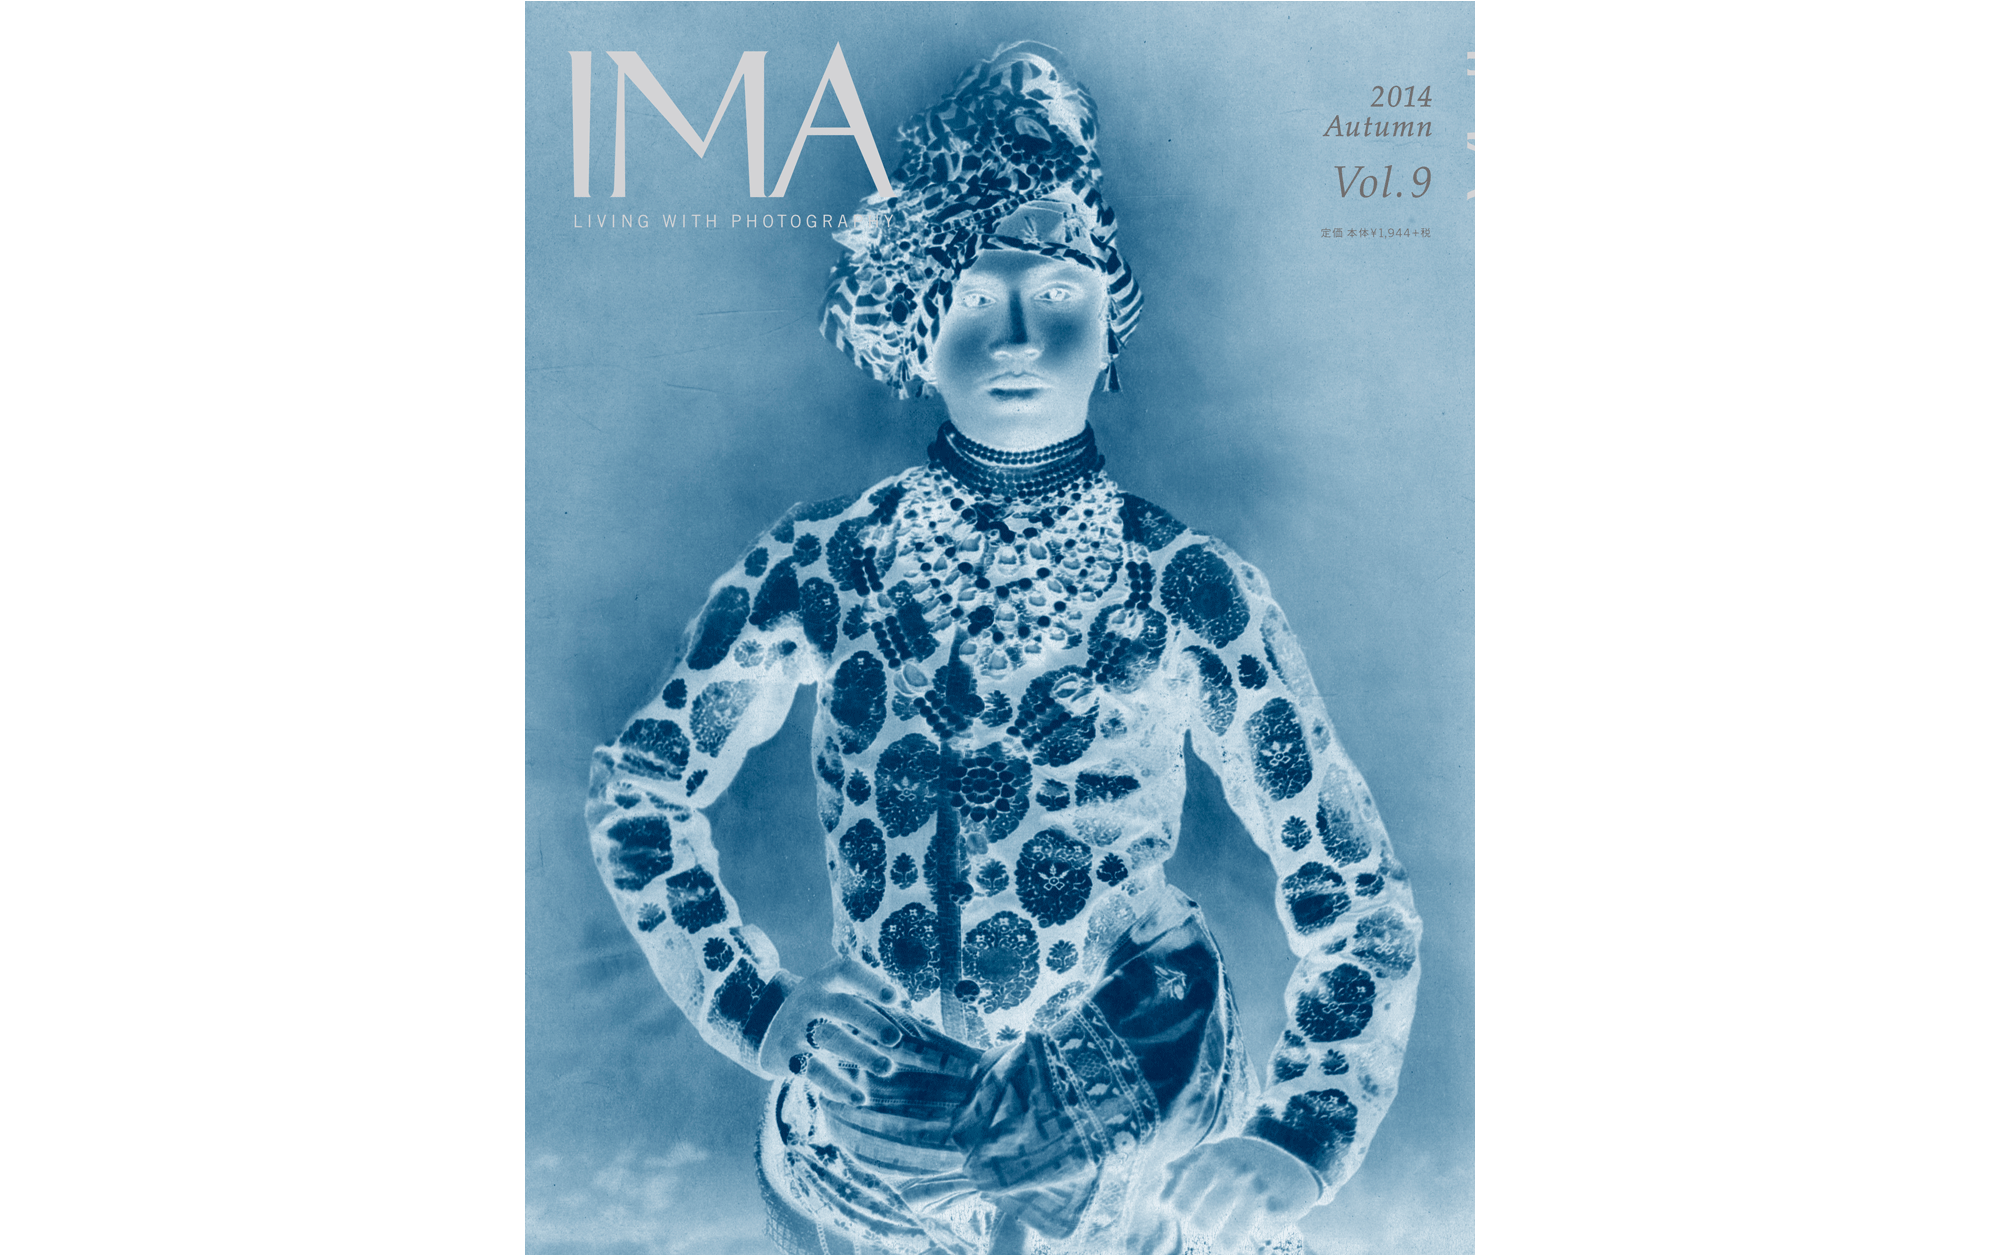 IMA 2014 Autumn Vol.9